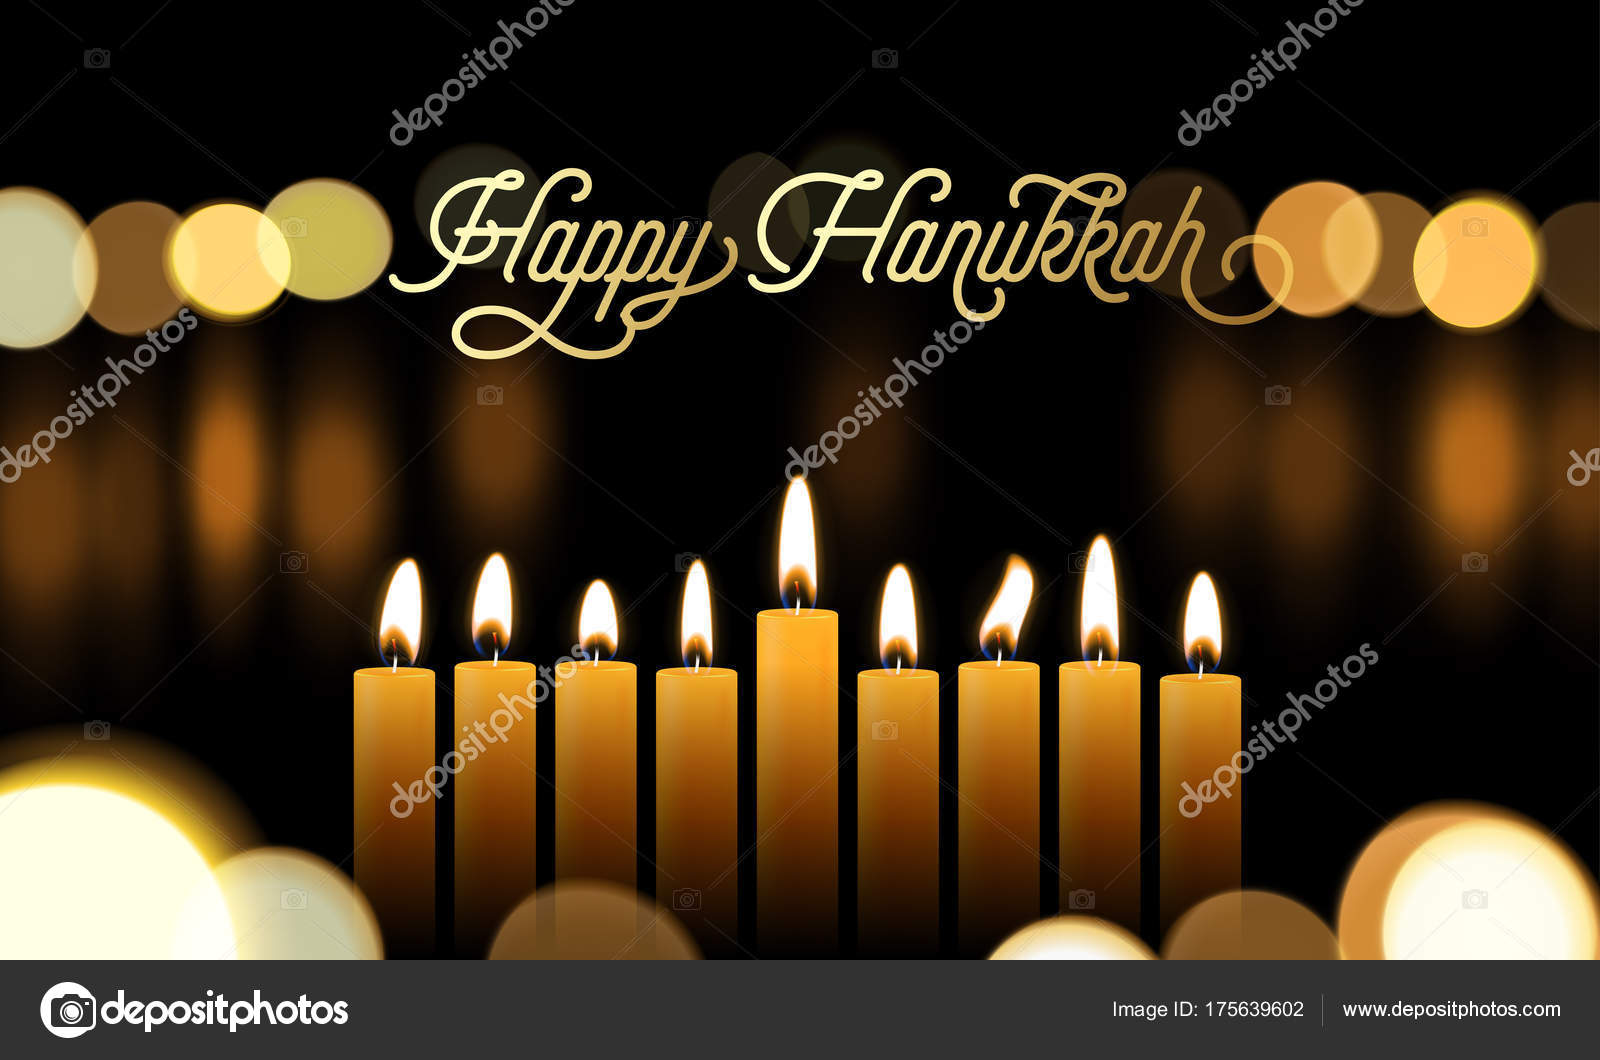 Happy Hanukkah Greeting Card Of Golden Font And Candles For Jewish